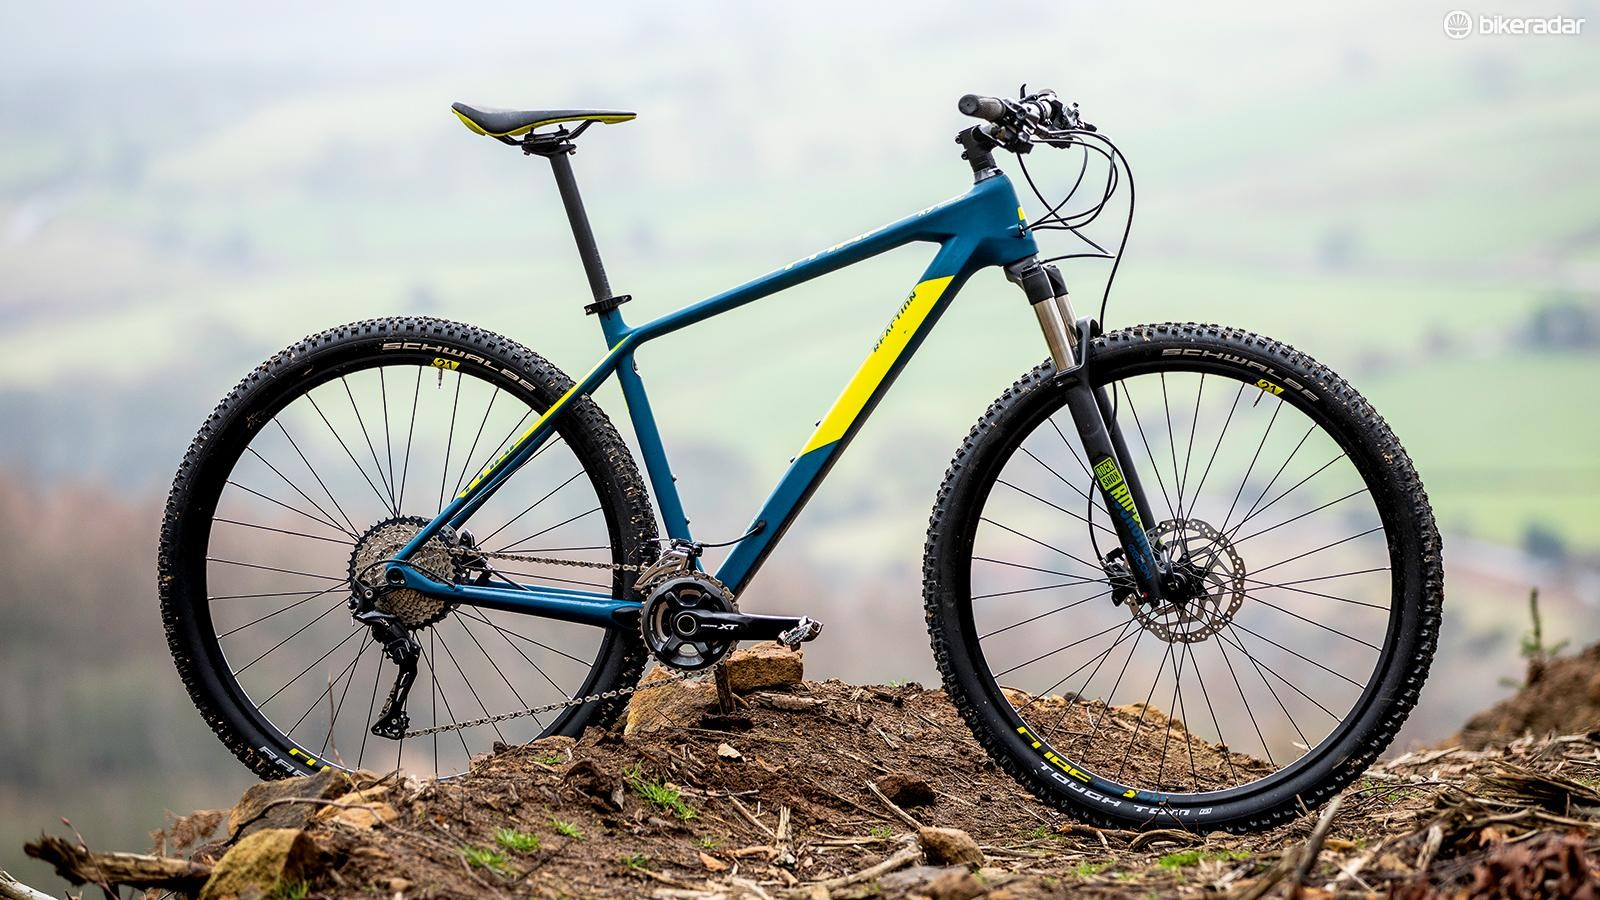 Cube's 'Agile Ride Geometry' is up to date, with a 69-degree head angle and low bottom bracket